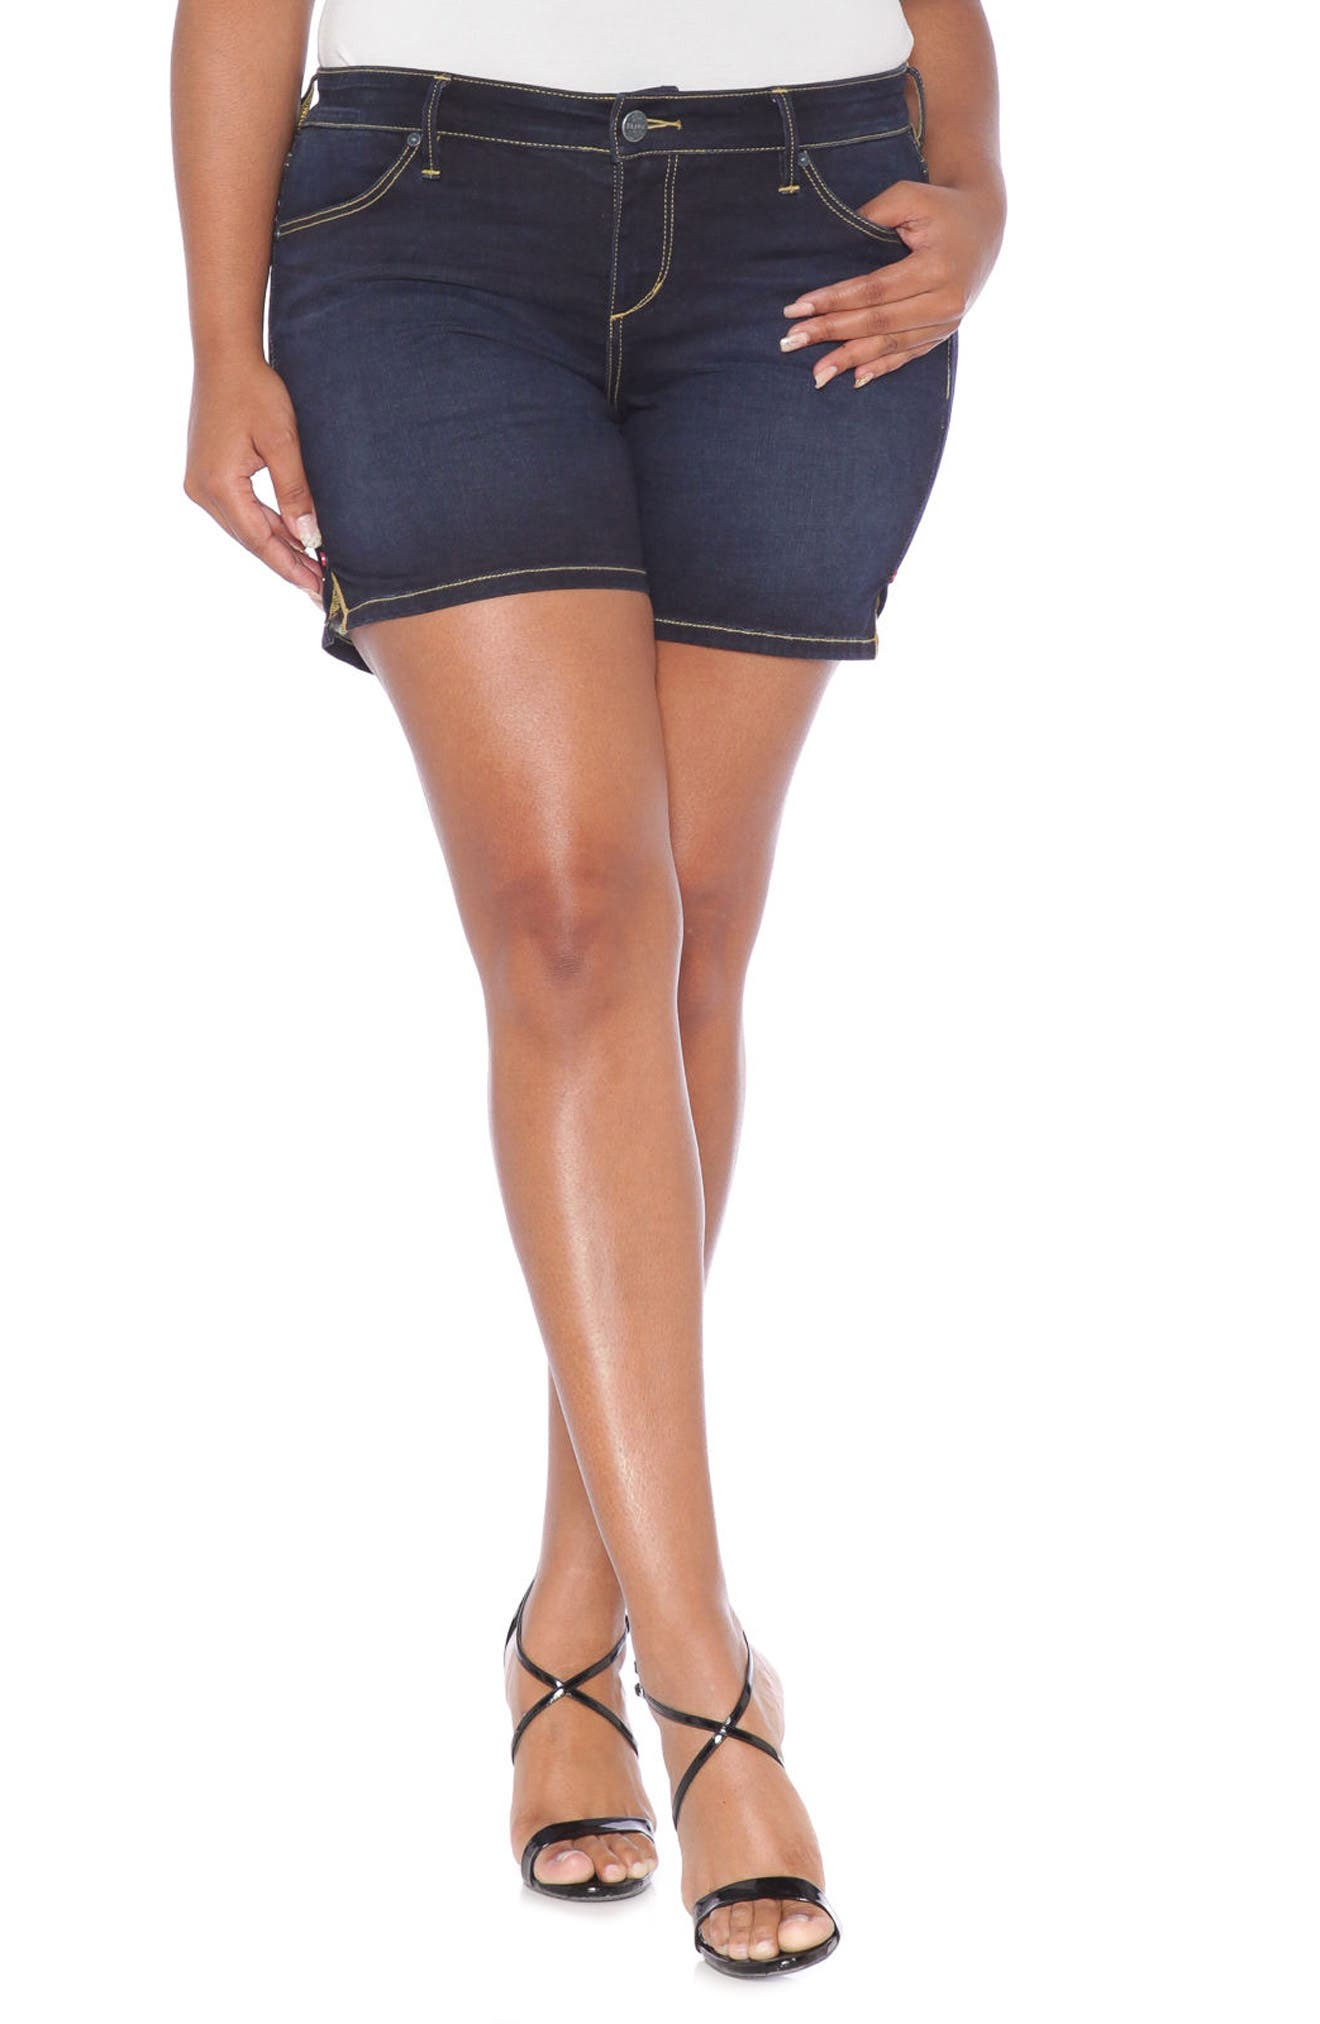 Alternate Image 1 Selected - SLINK Jeans Stretch Denim Shorts (Summer) (Plus Size)